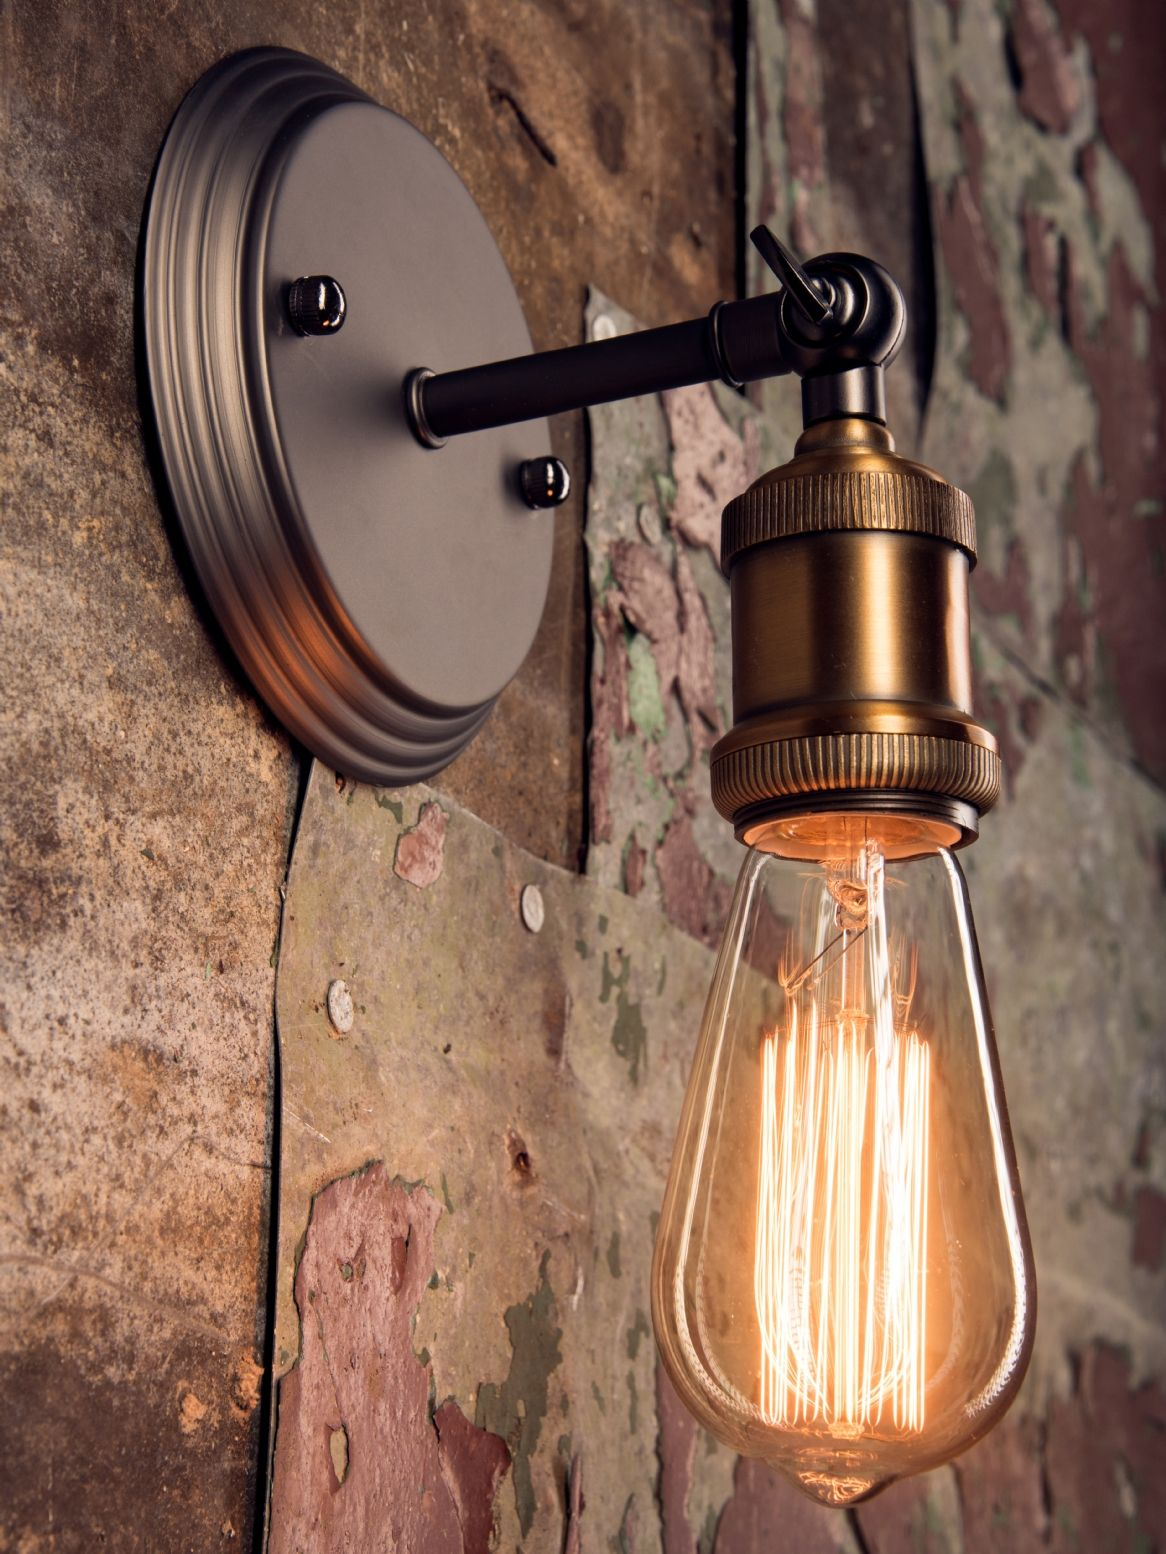 Single Rustic Wall Light With Adjustable Knuckle And Squirrel Cage Filament Bulb Rustic Light Fixtures Wall Lights Rustic Wall Lighting